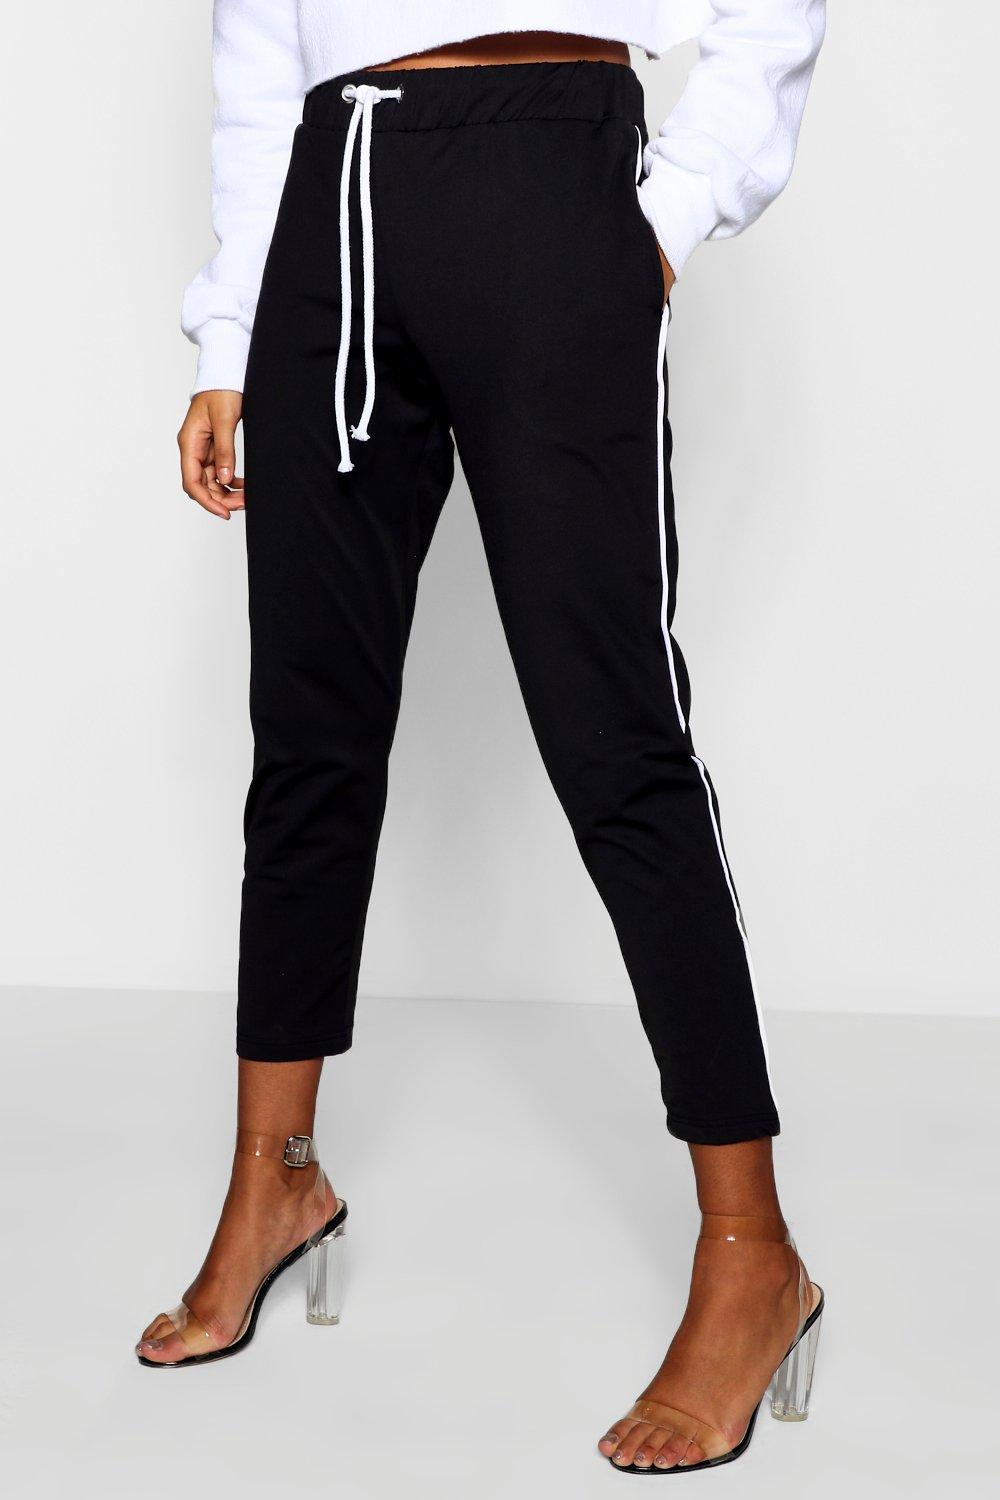 Tricot Piped Piped black Tricot black Tricot Jogger Piped Jogger qwC7vS